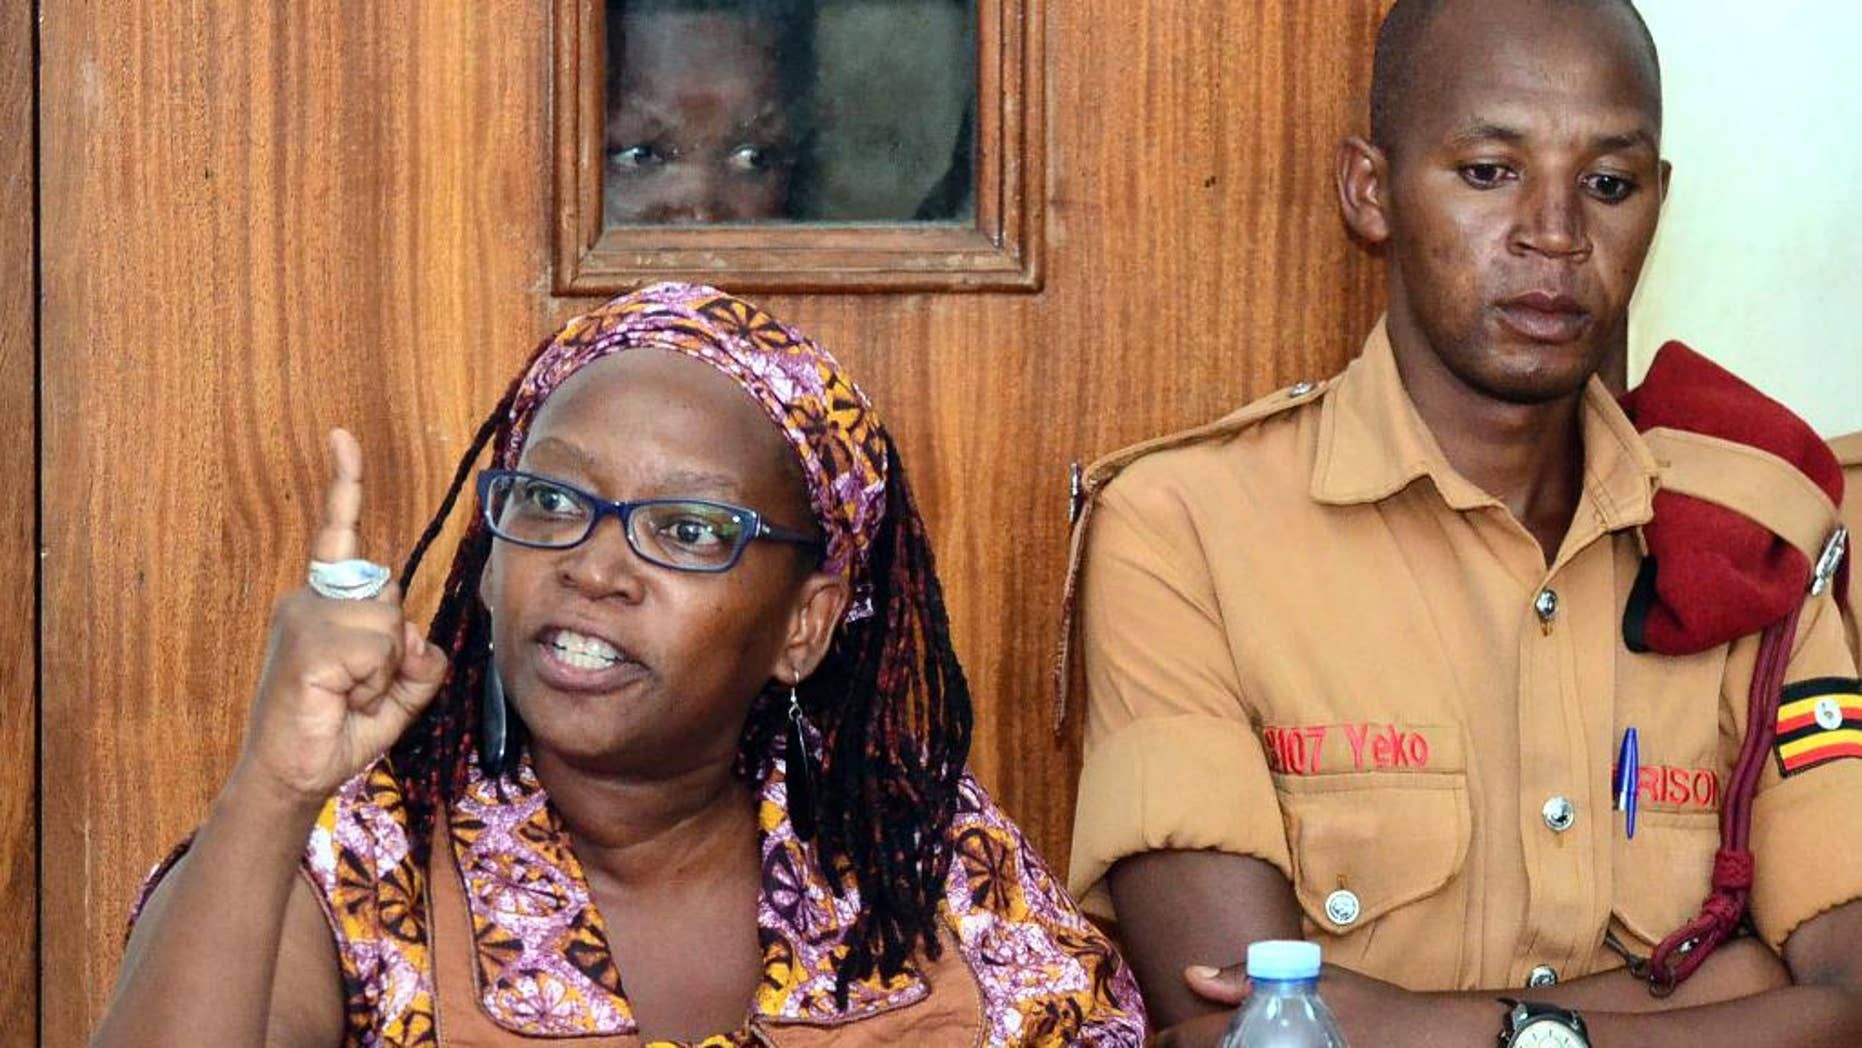 "In this photo taken on Monday April 10, 2017, Makerere University researcher Dr Stella Nyanzi, left, gestures in the dock at Buganda Road Court in the capital Kampala, Uganda. A Ugandan academic detained for calling the country's president ""a pair of buttocks"" resisted attempts to forcibly carry out psychiatric tests on her, her attorney said Thursday, April 13 describing the alleged incident as an attack on her dignity.(AP Photo)"